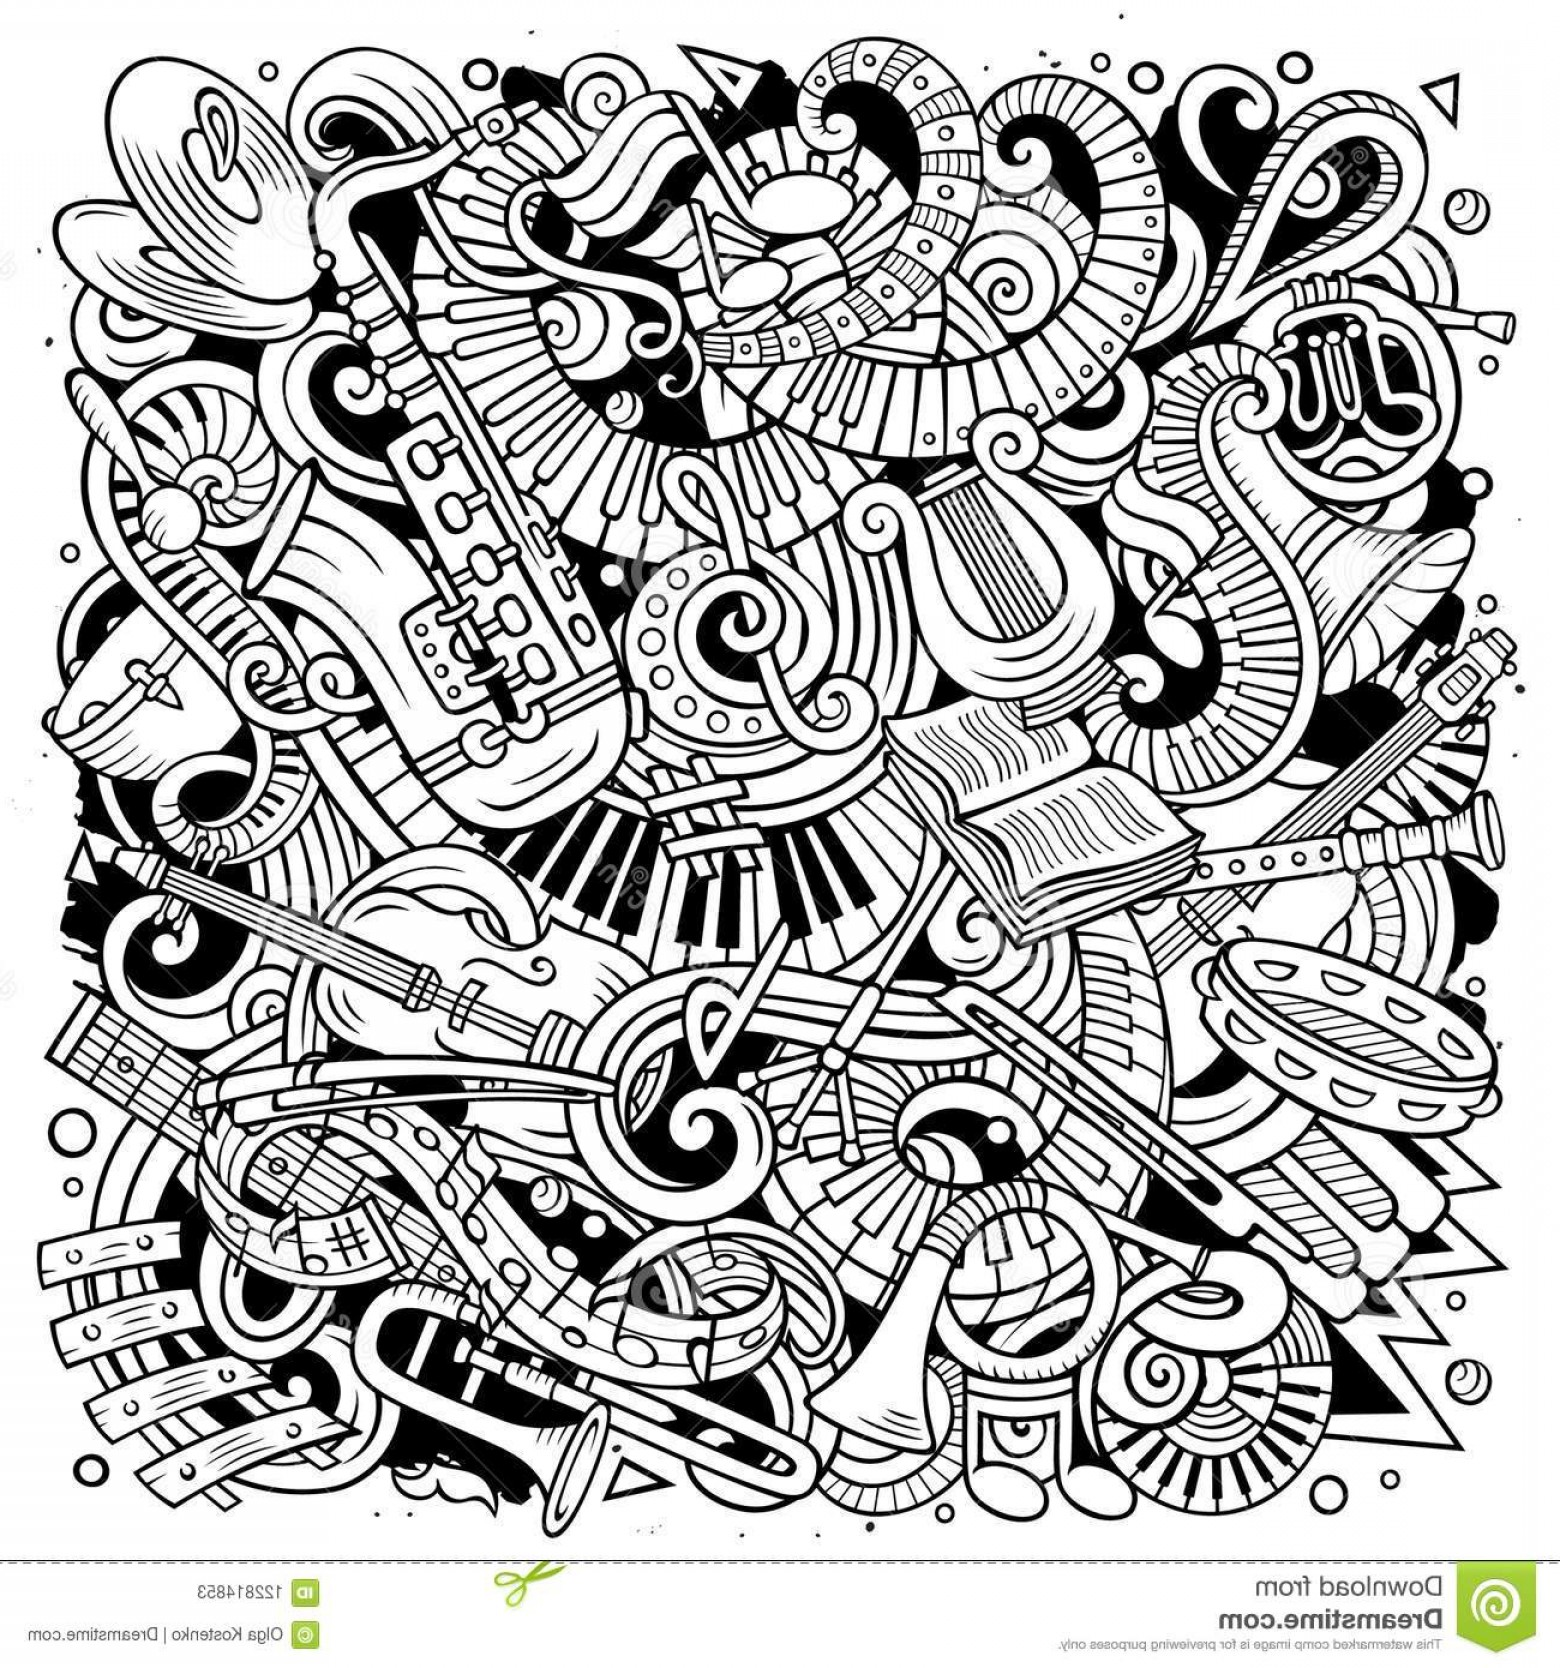 Musical Vector Artwork: Cartoon Vector Doodles Classic Music Illustration Line Art Detailed Lots Objects Background All Objects Separate Sketchy Image